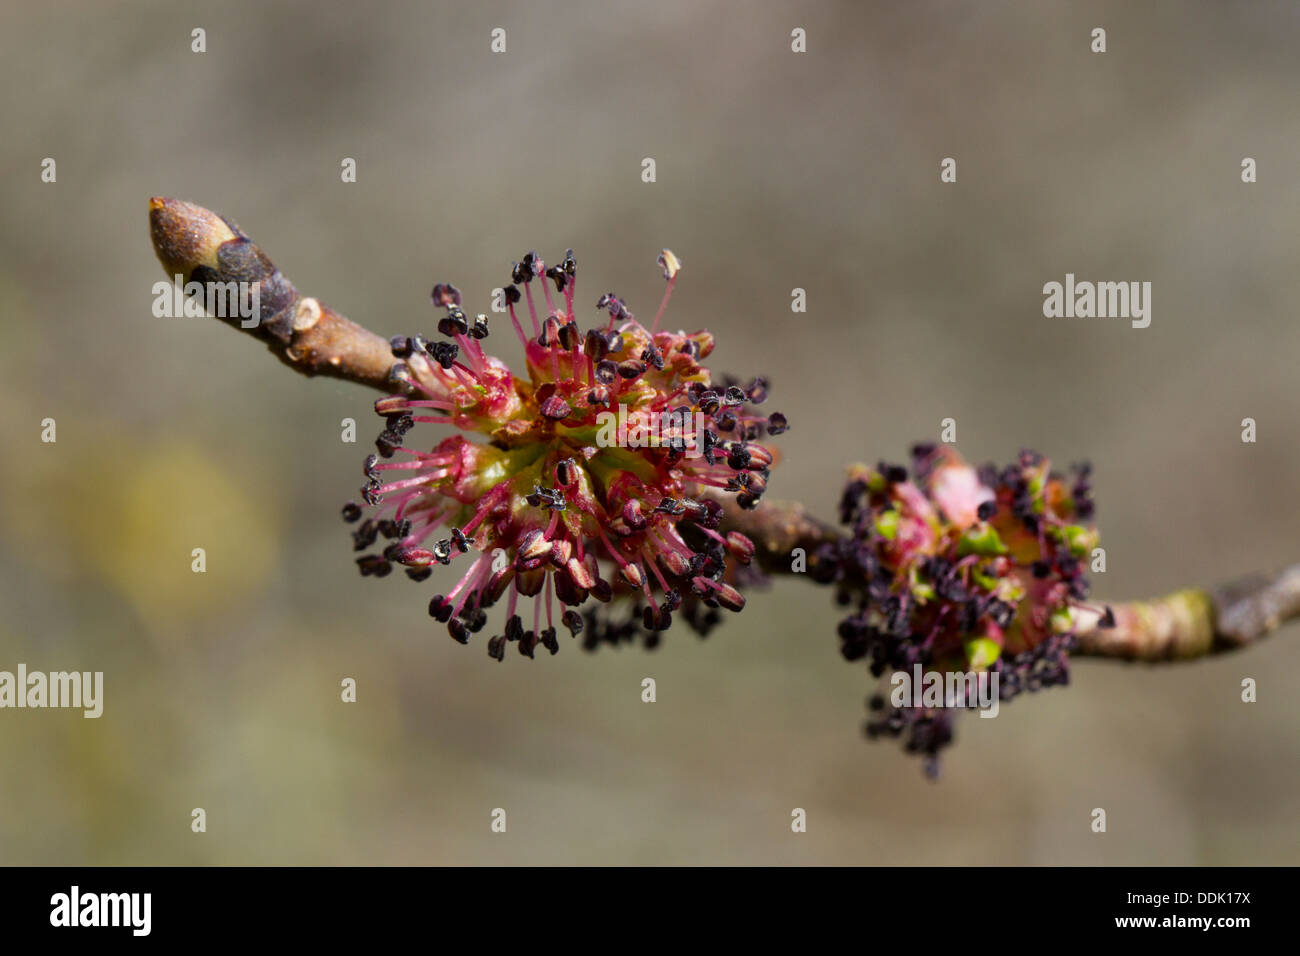 Wych Elm (Ulmus glabra) close-up of female flowers on a shoot. Powys, Wales. April. - Stock Image